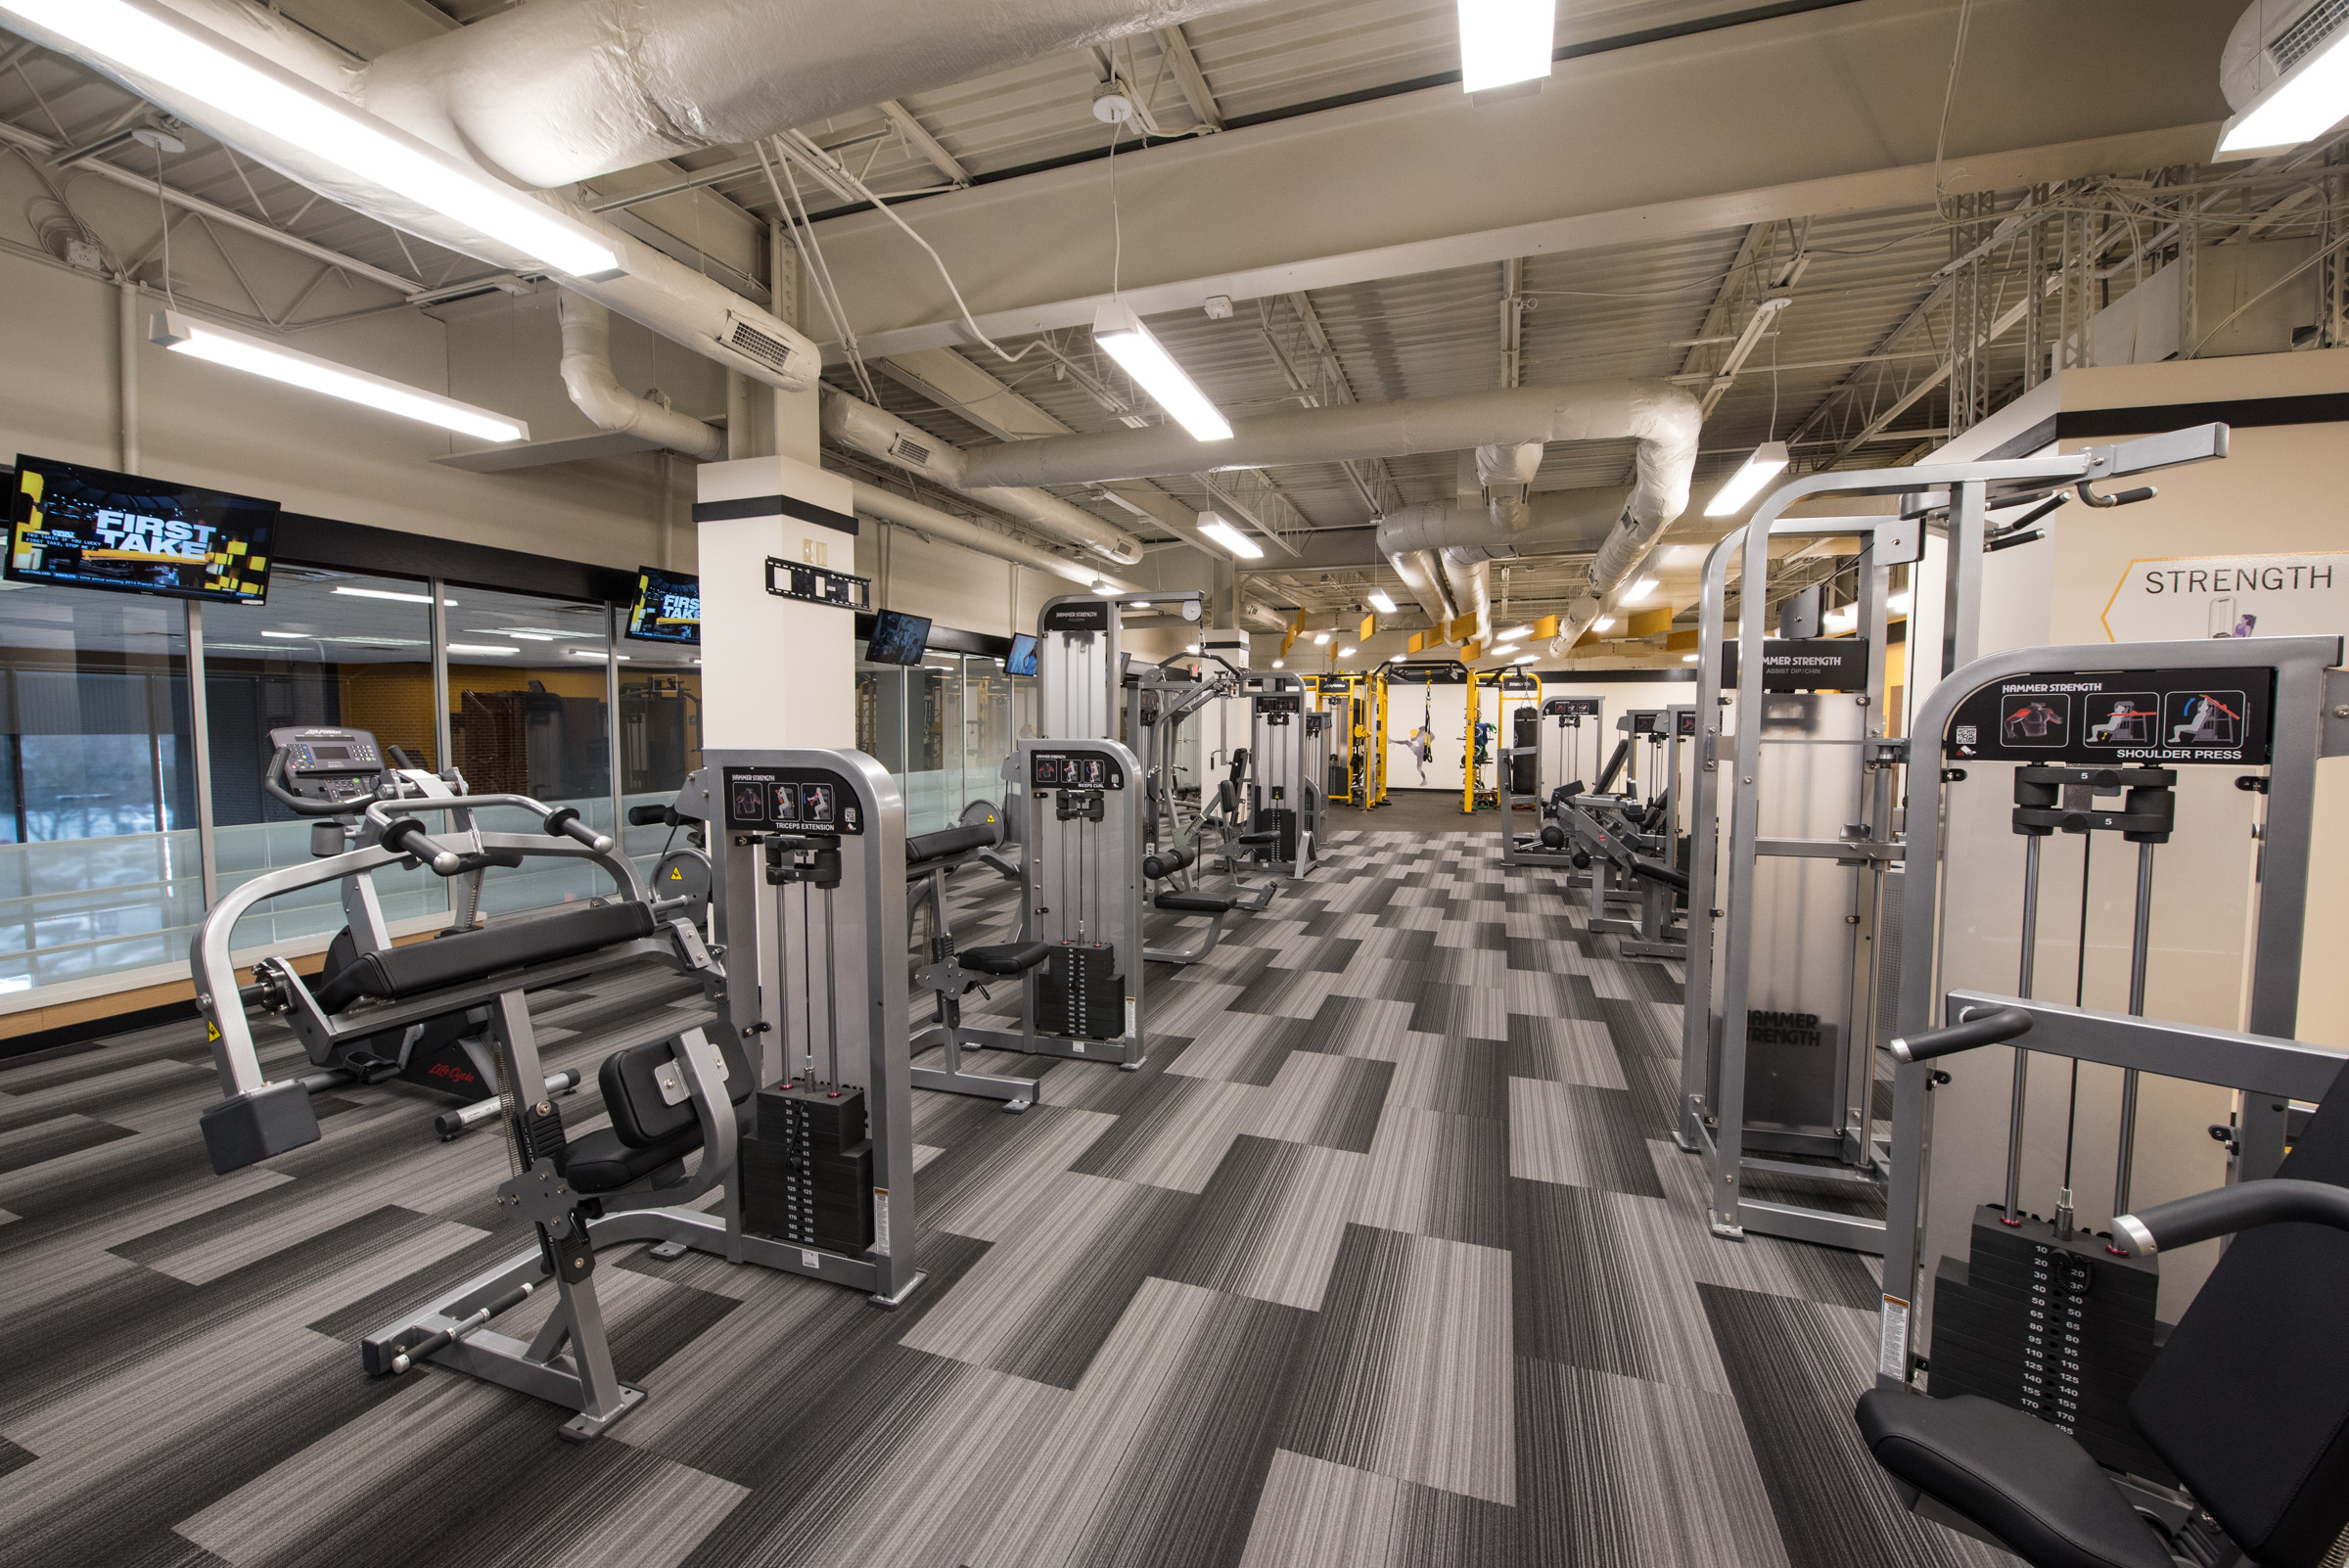 Mezz Fitness center opens as part of new semester campus developments